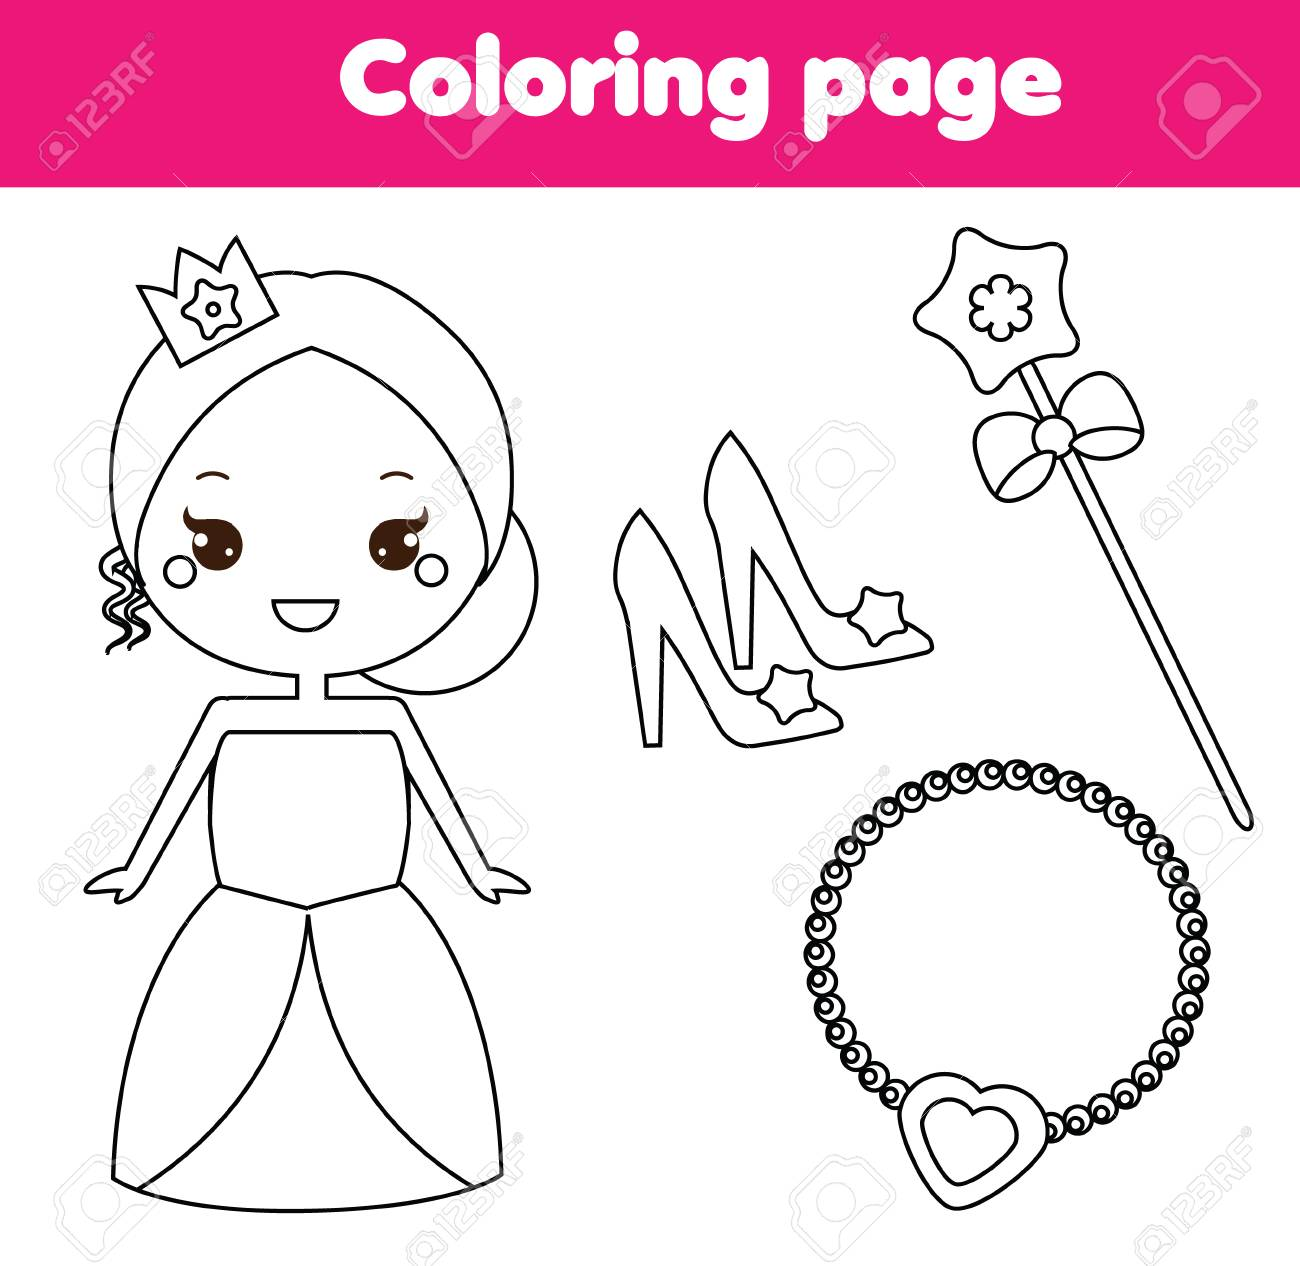 Disney Princesses Coloring Page Coloring Home - Top Coloring Pages ... | 1266x1300